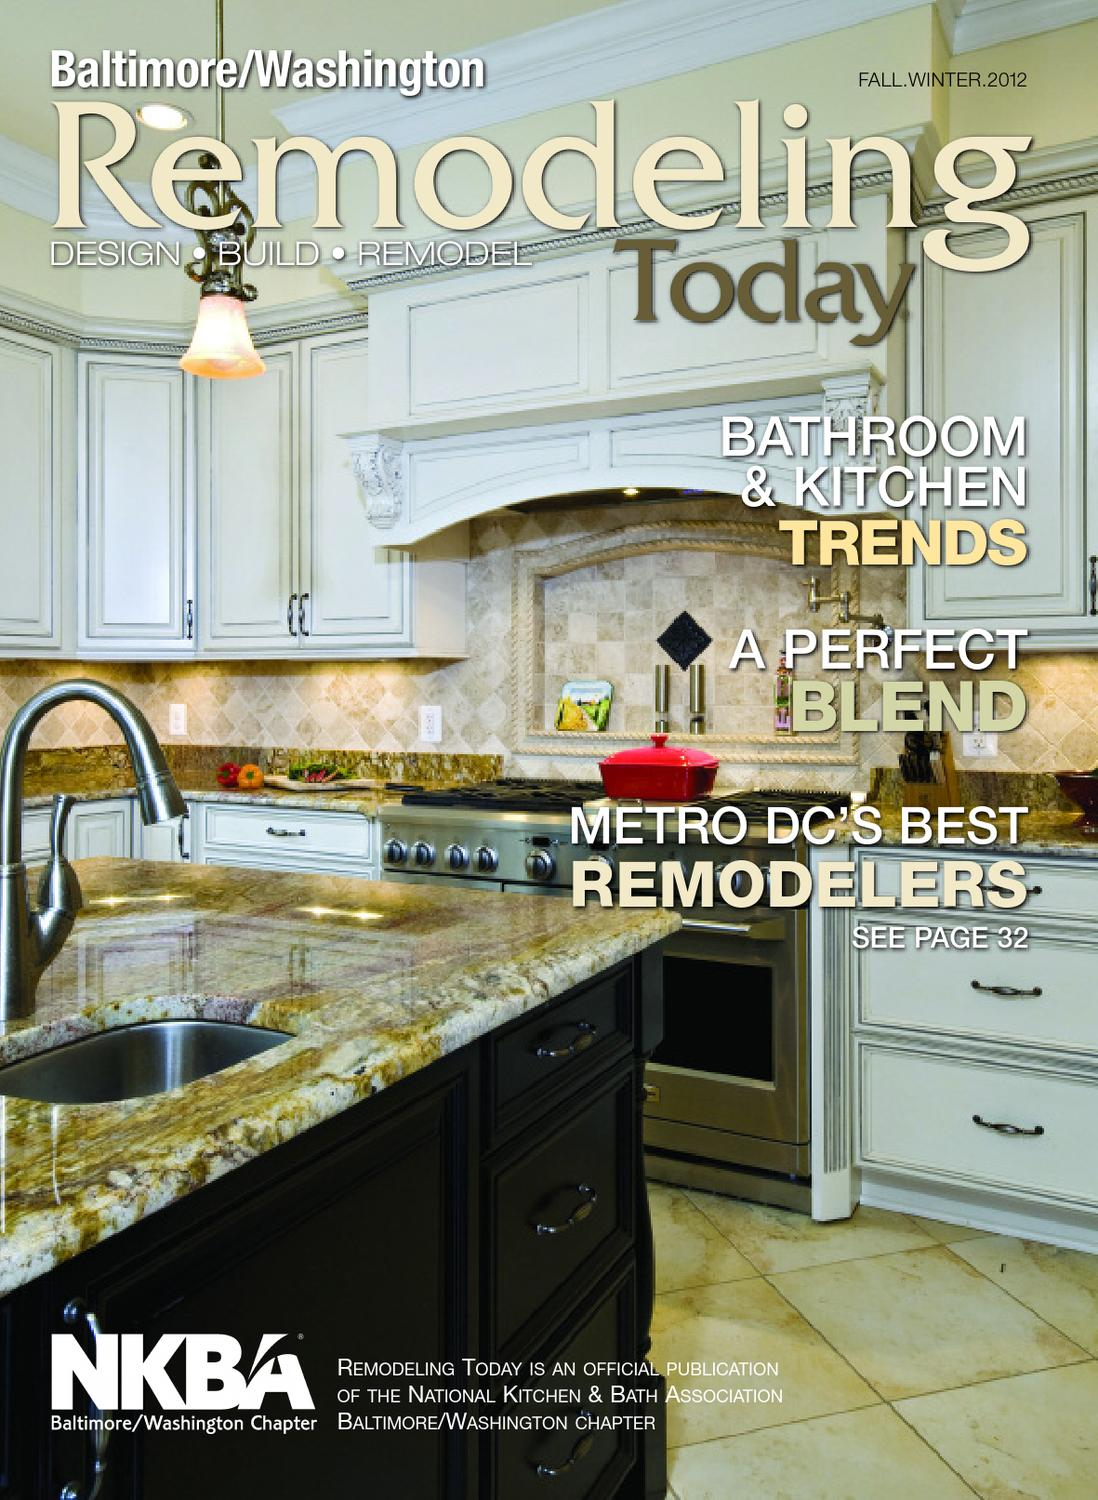 rtfw12dc kitchen remodeling baltimore Remodeling Today Baltimore Washington Fall Winter by Remodelinform issuu